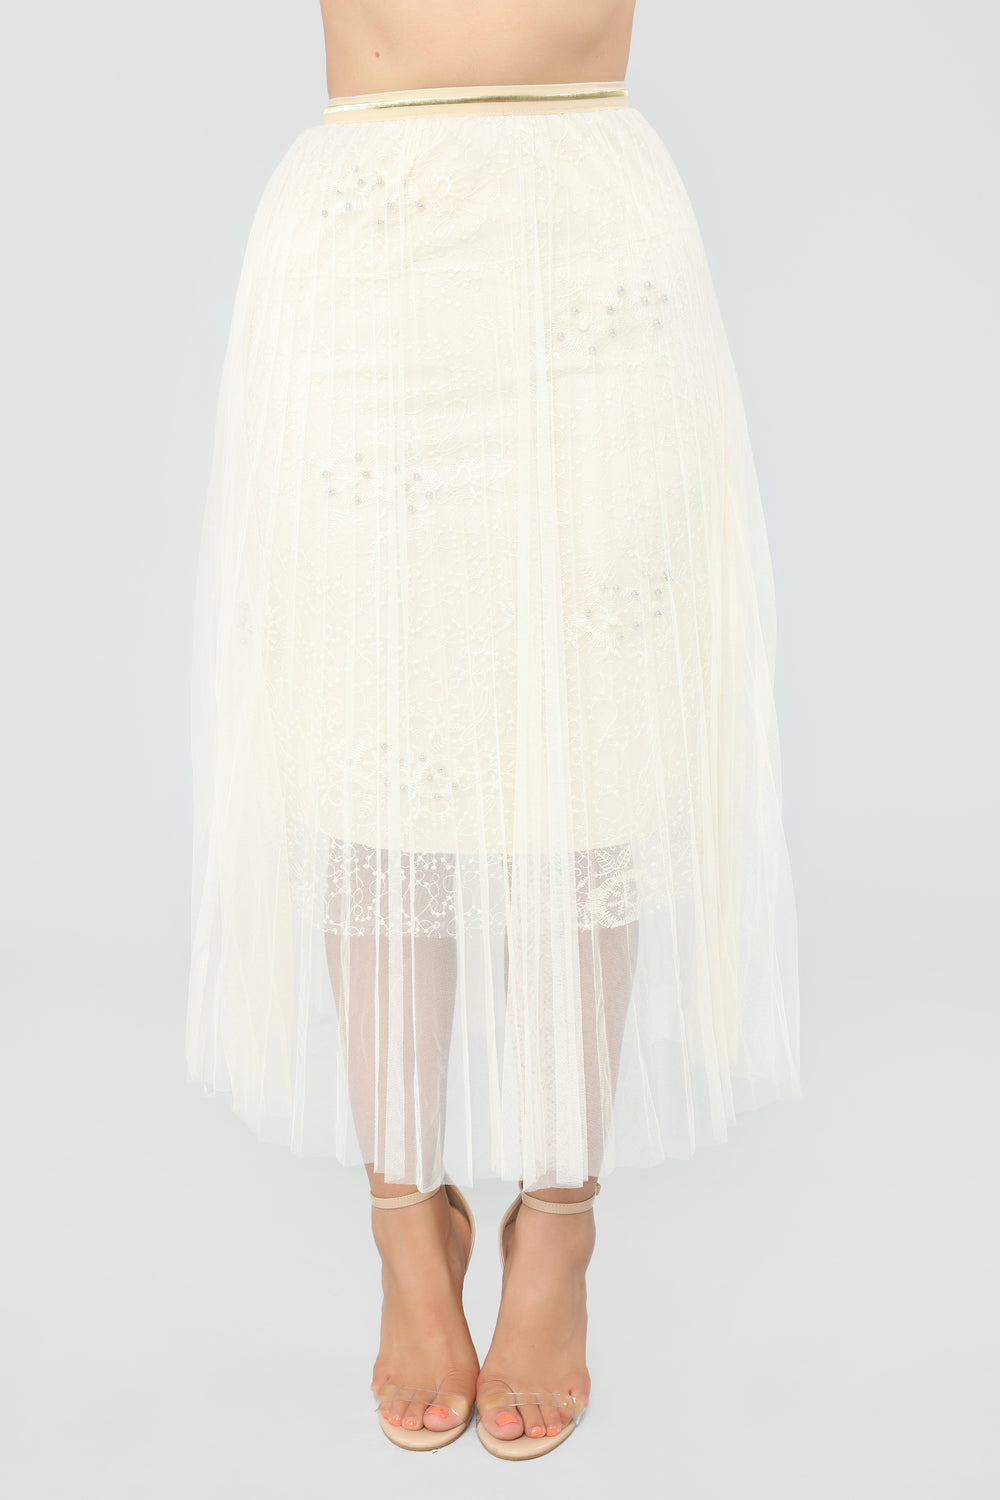 New Me Embroidered Skirt - Ivory